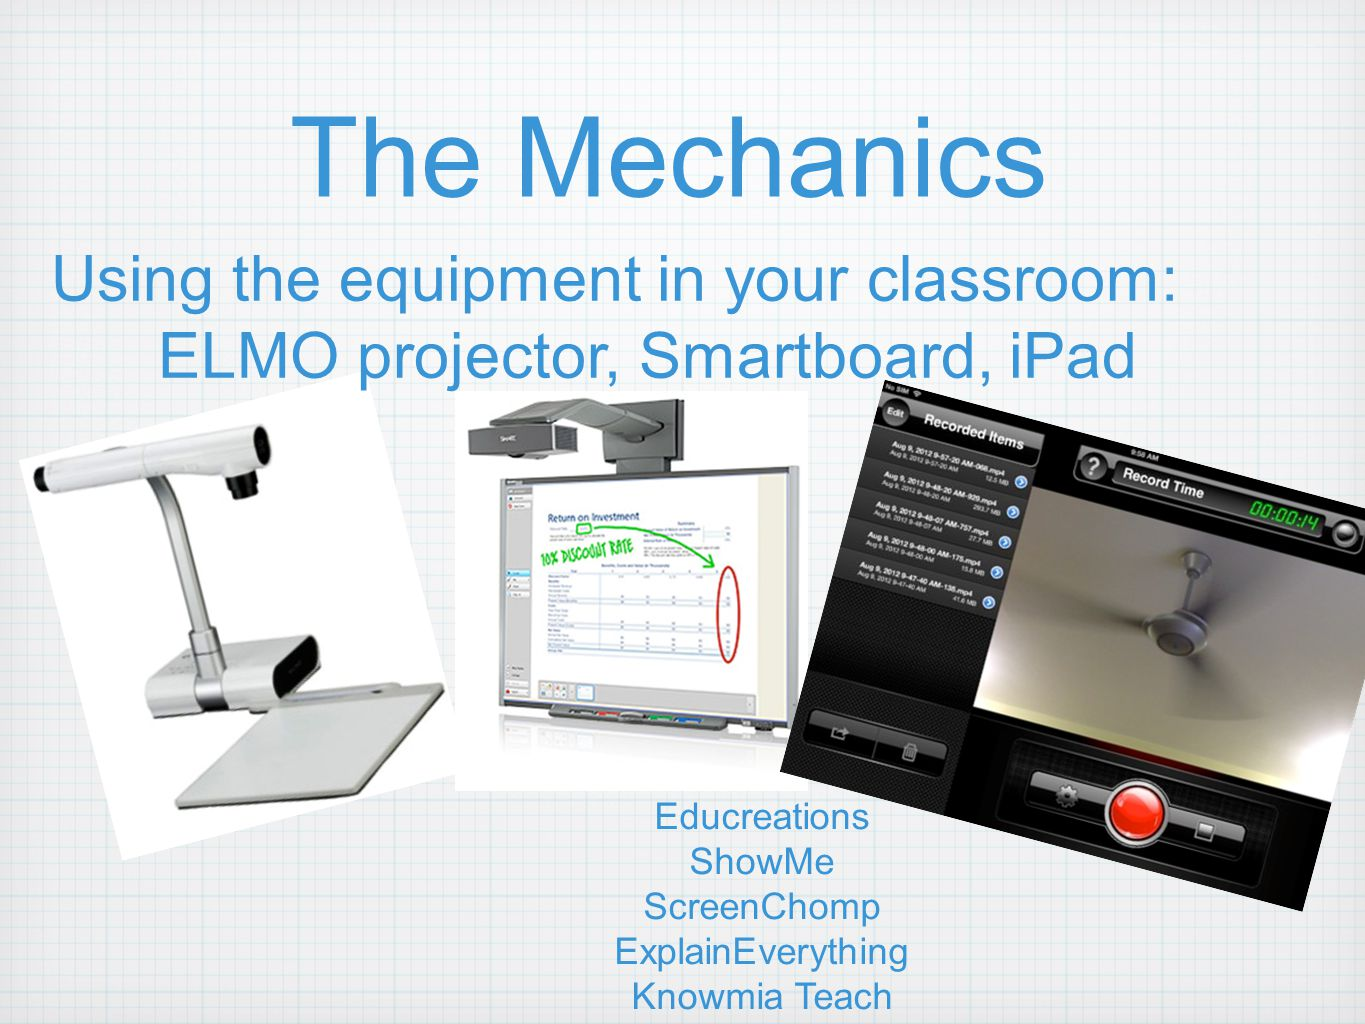 The Mechanics Using the equipment in your classroom: ELMO projector, Smartboard, iPad Educreations ShowMe ScreenChomp ExplainEverything Knowmia Teach